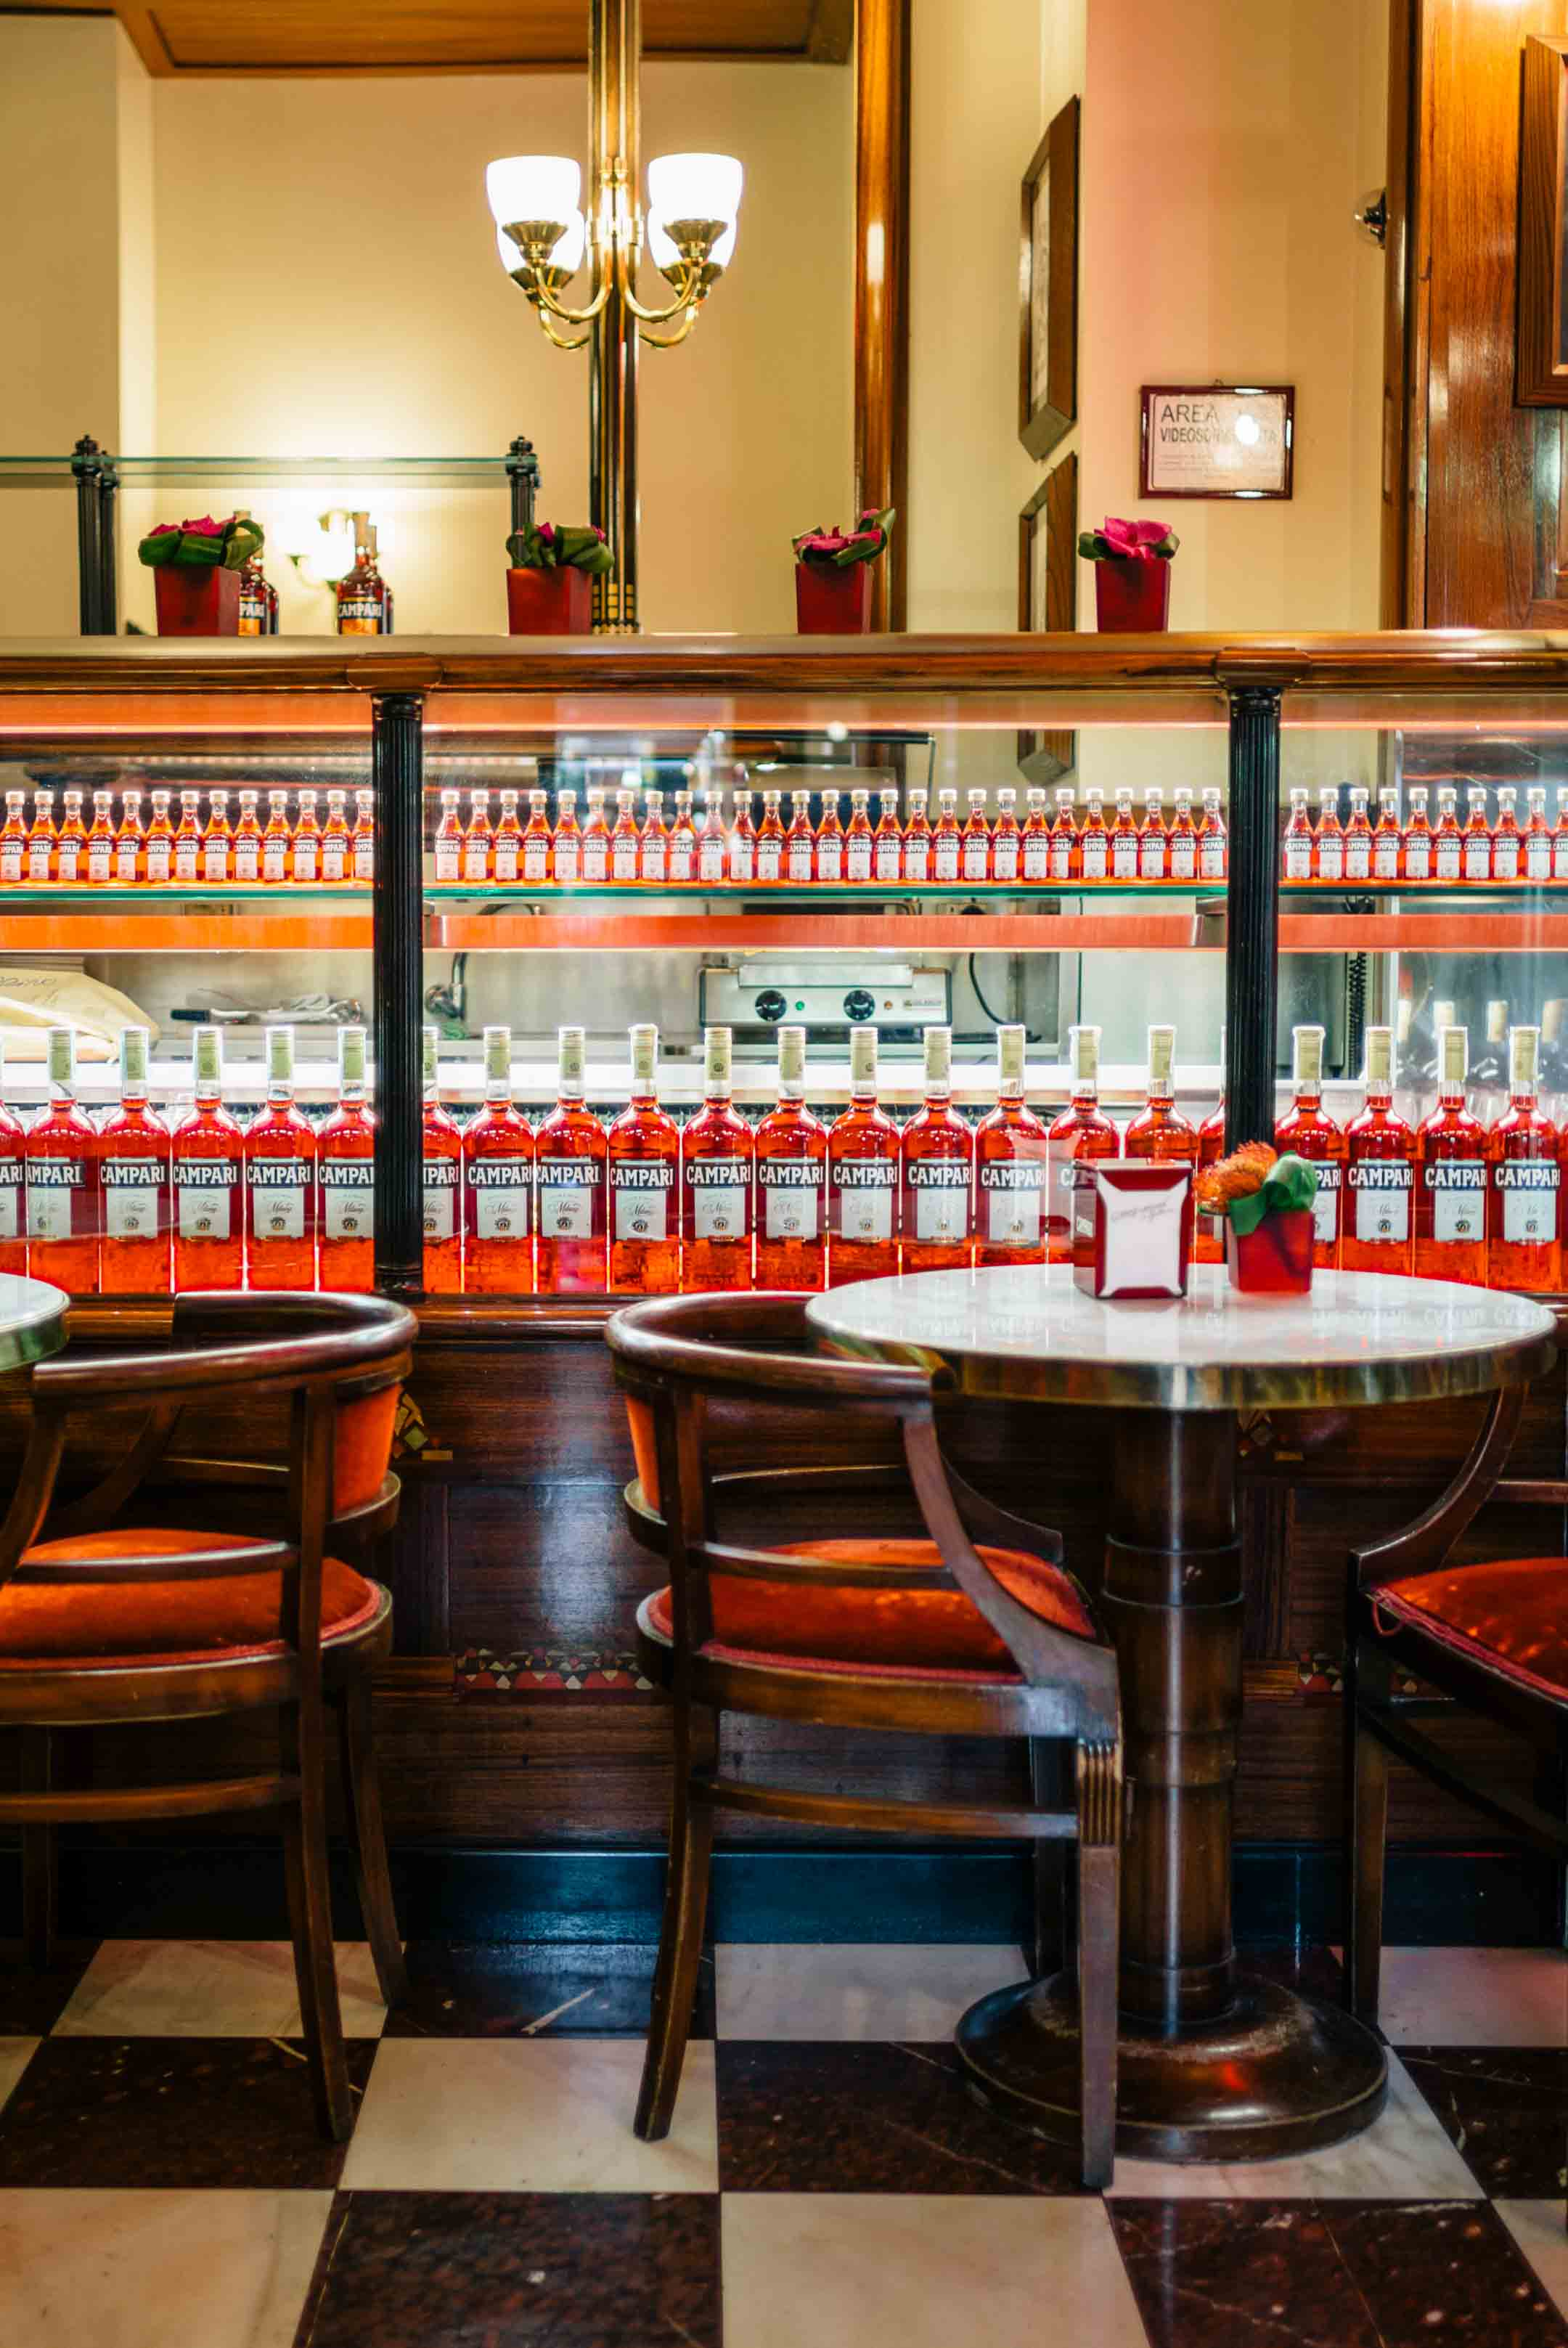 The Taste Edit recommends stopping at Camparino in Galleria in Milan - the original campari cocktail bar.